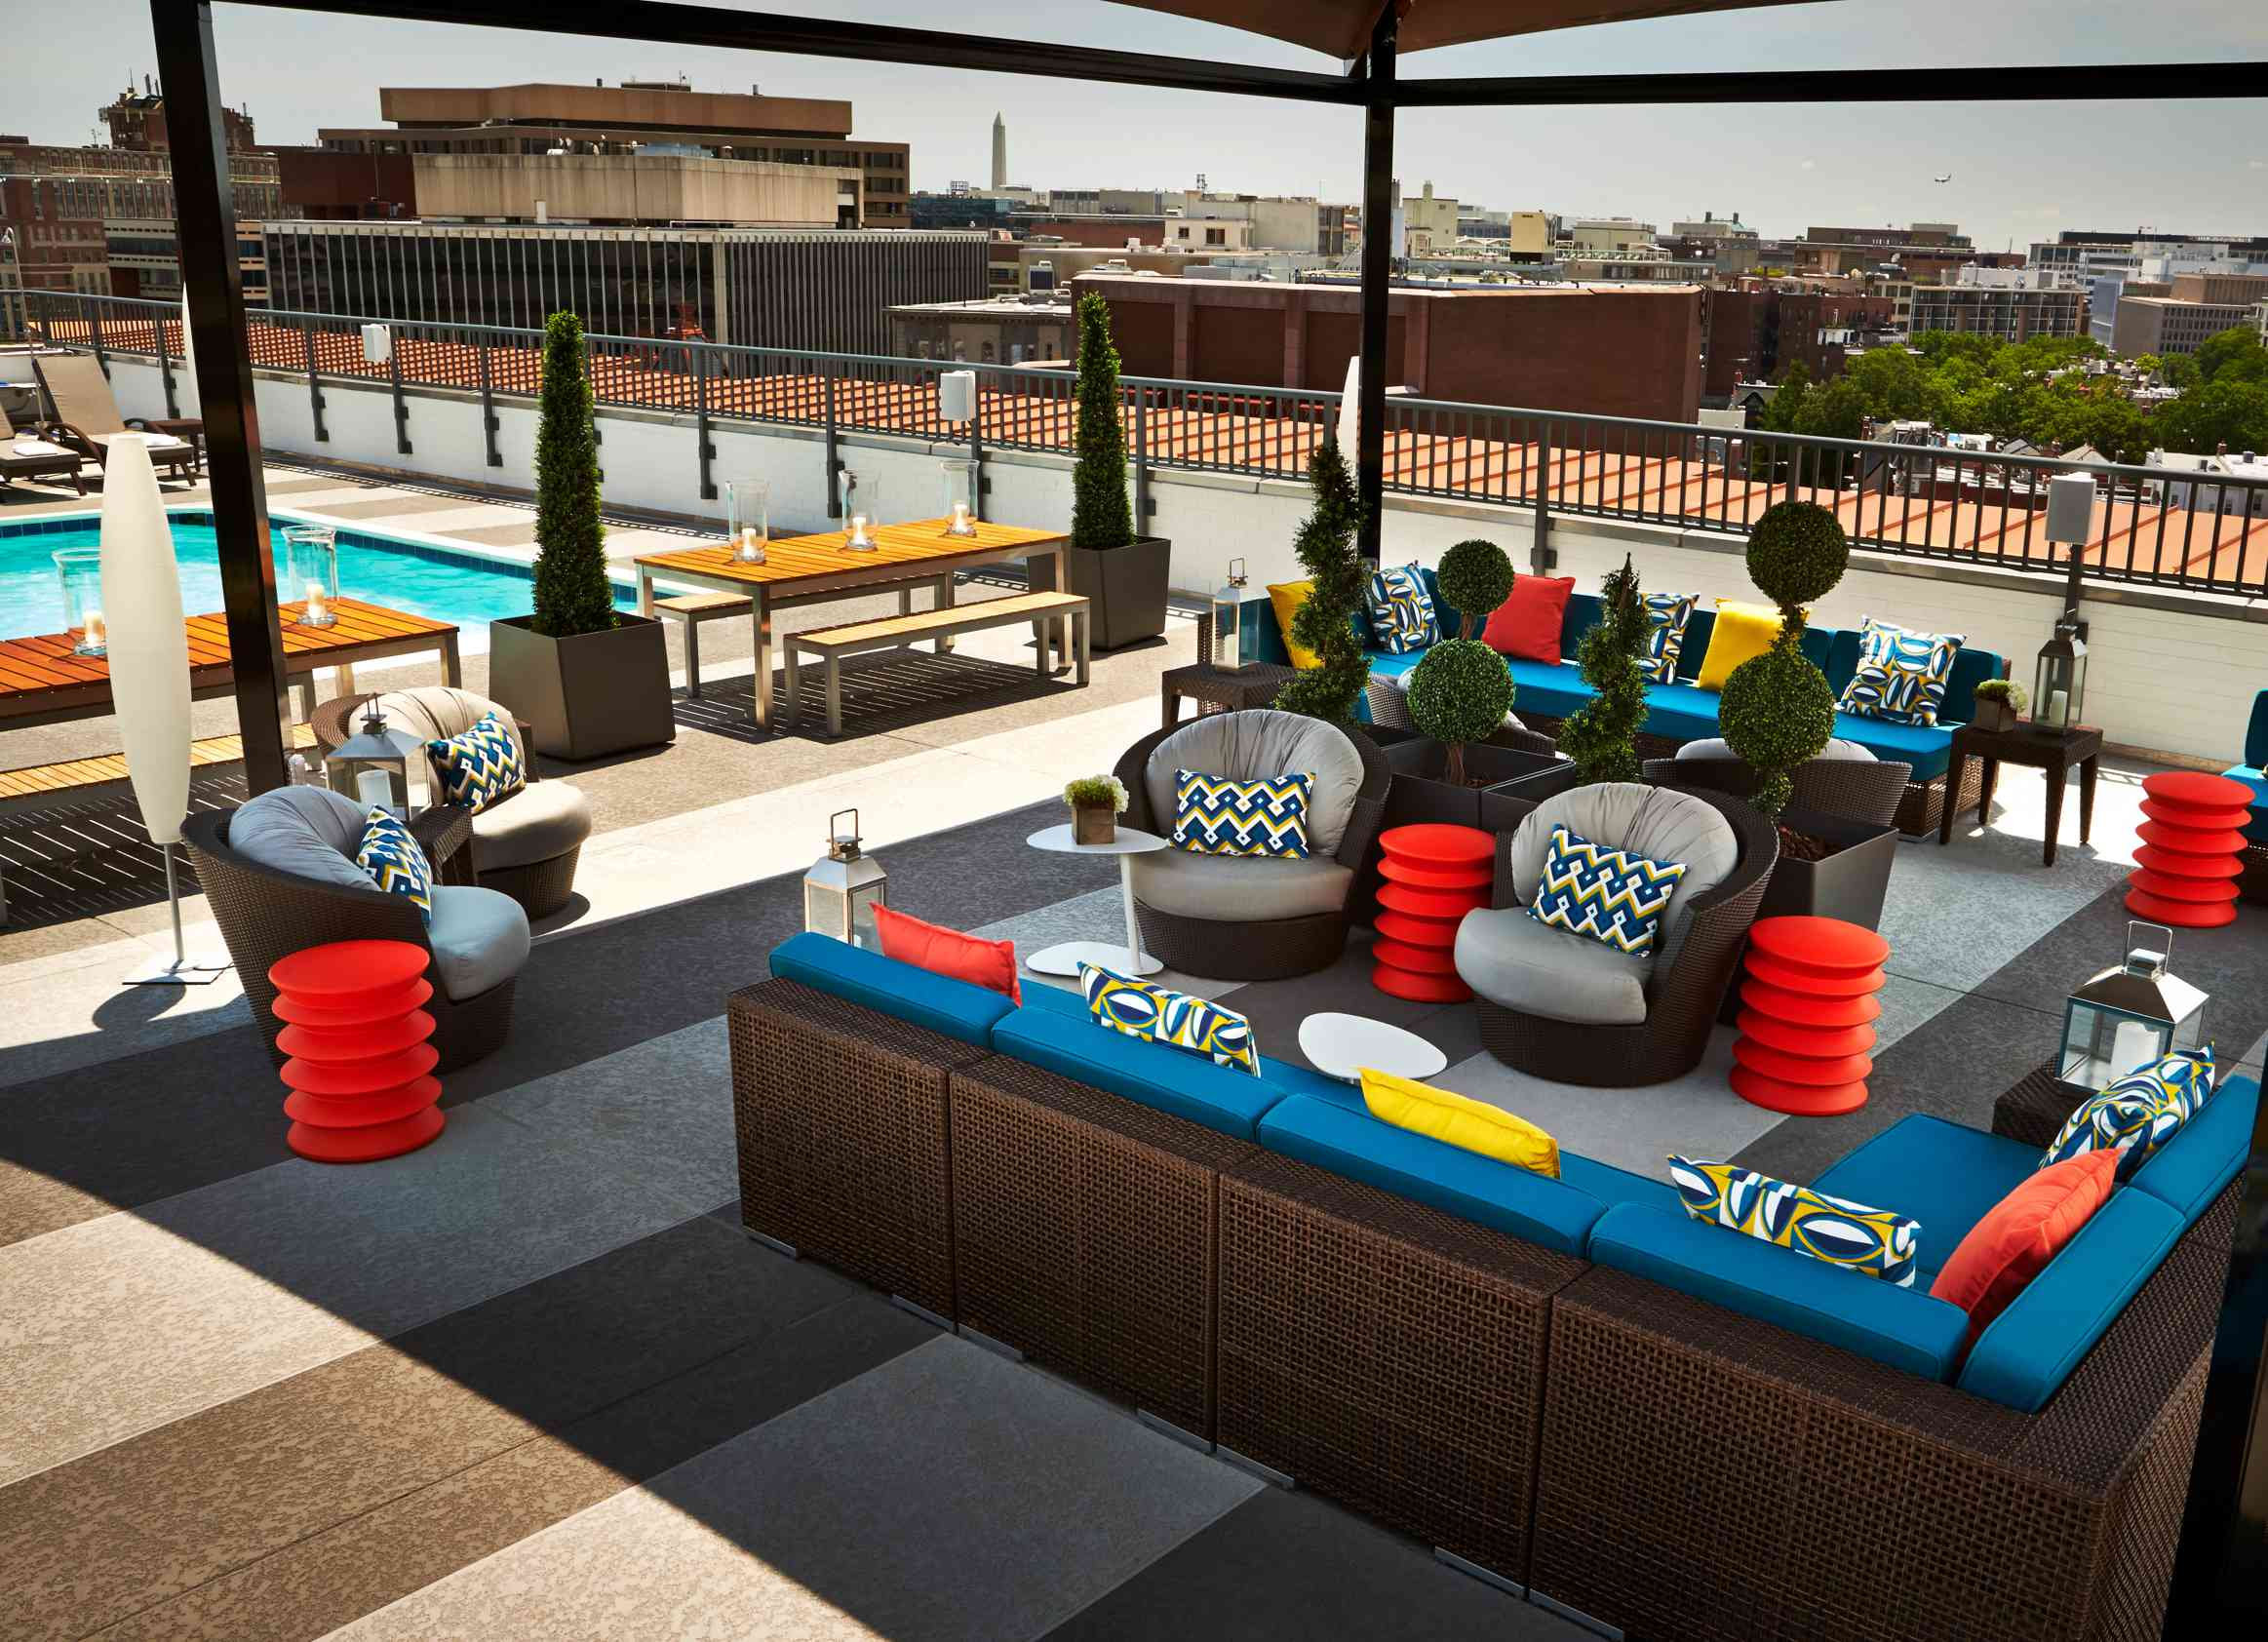 The Embassy Row Hotel D.C. rooftop